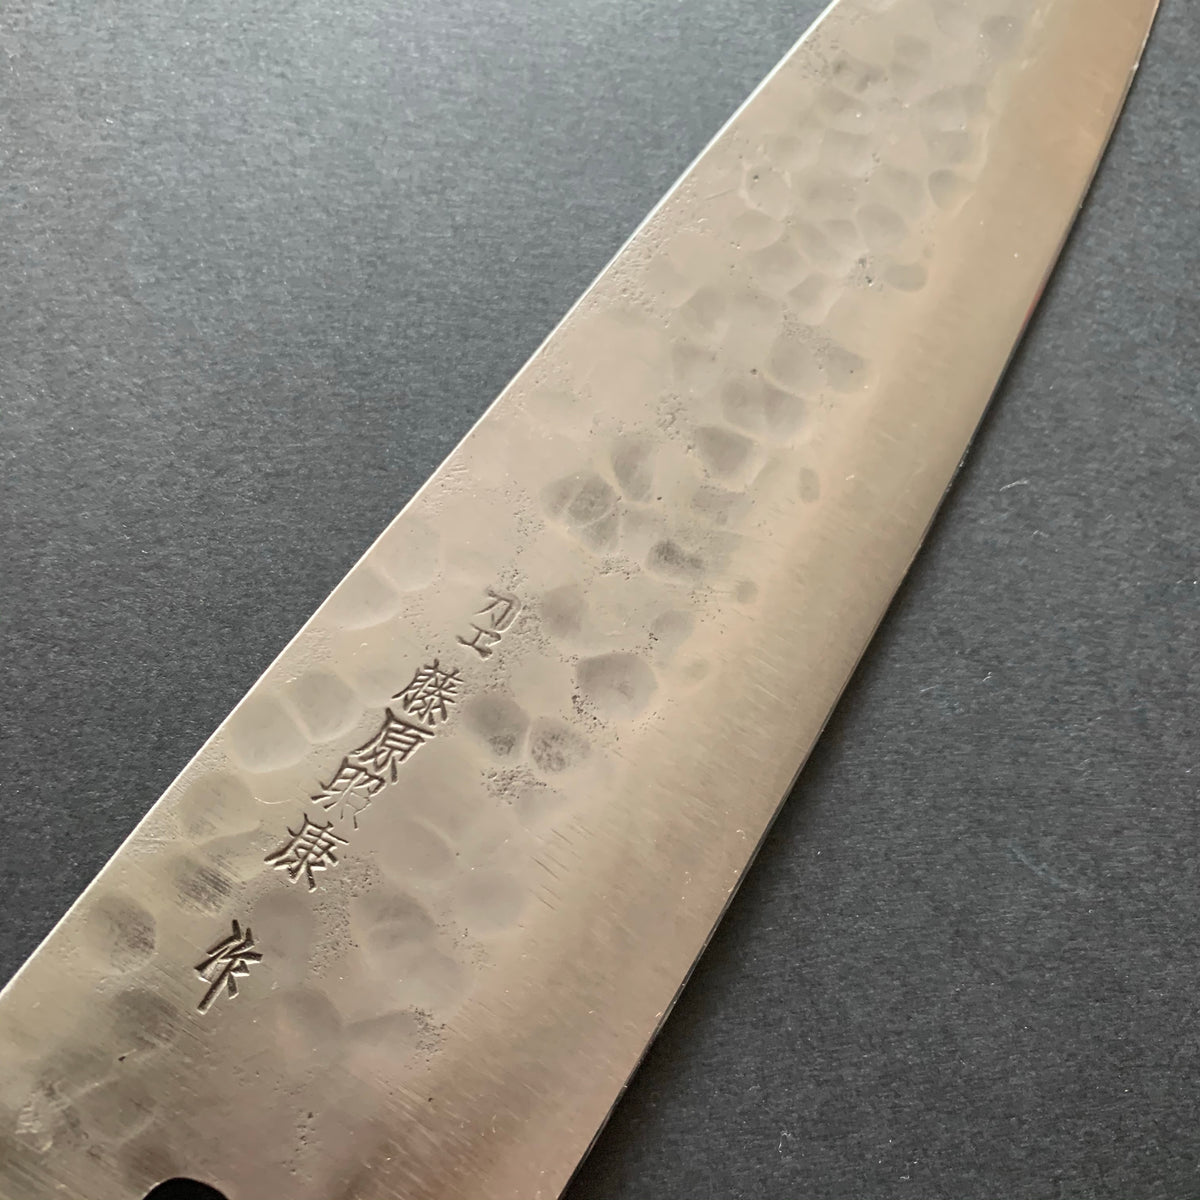 Gyuto knife, Shirogami 1 with stainless steel cladding, nashiji finish - Fujiwara